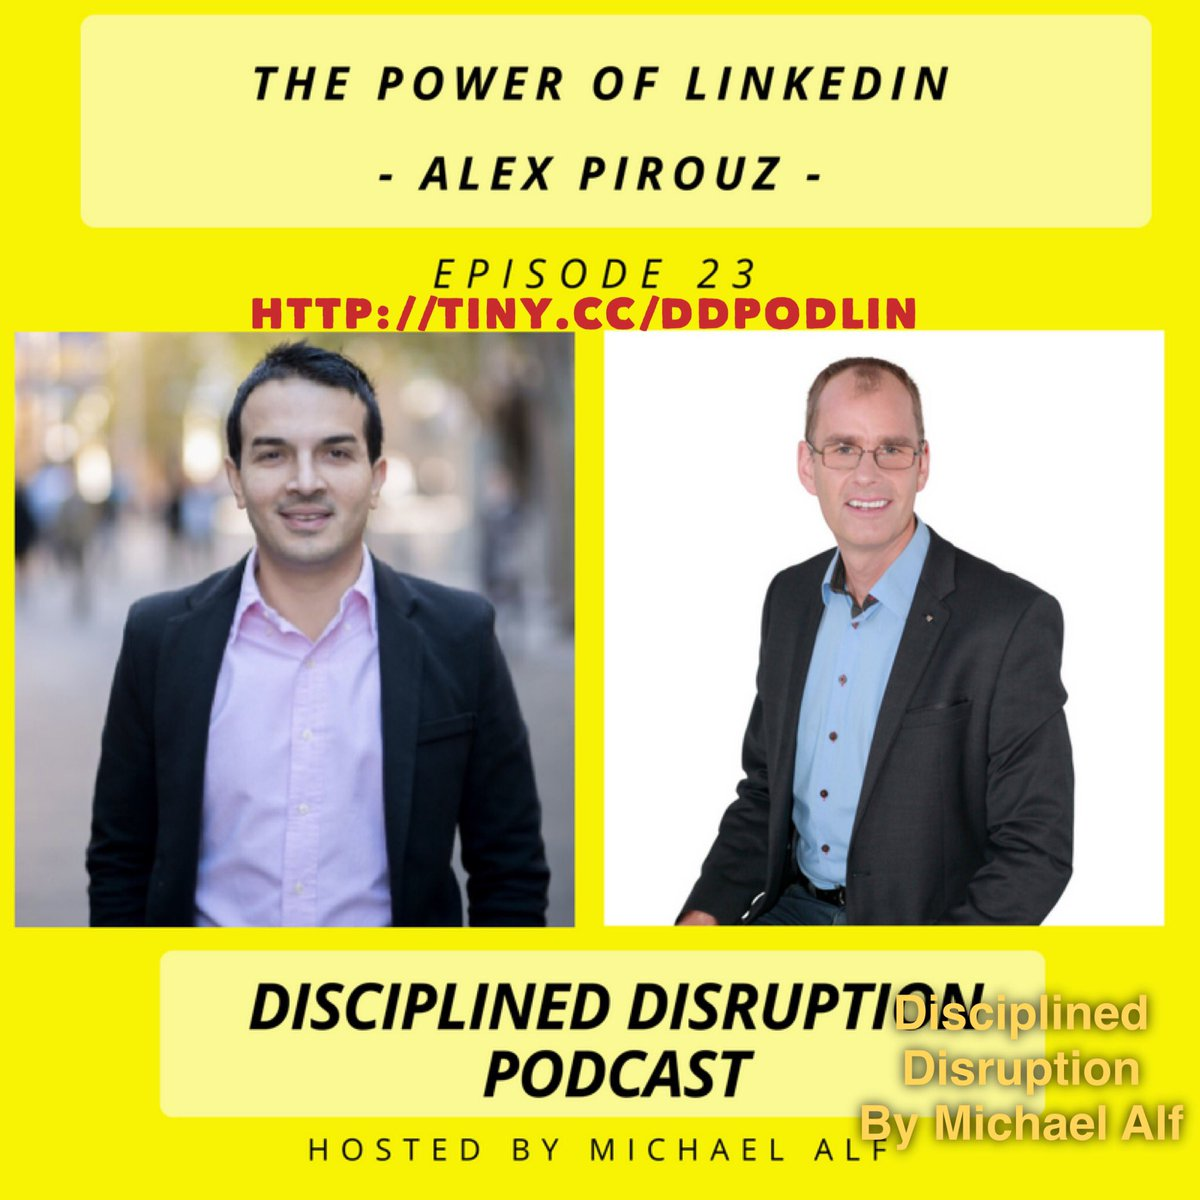 Want to leverage #linkedin ? Learn from #CEO Linkfluencer @AlexPirouz  http:// tiny.cc/ddpodcast  &nbsp;   #Podcast #Digitaldisruption<br>http://pic.twitter.com/Nb9r5iNZht